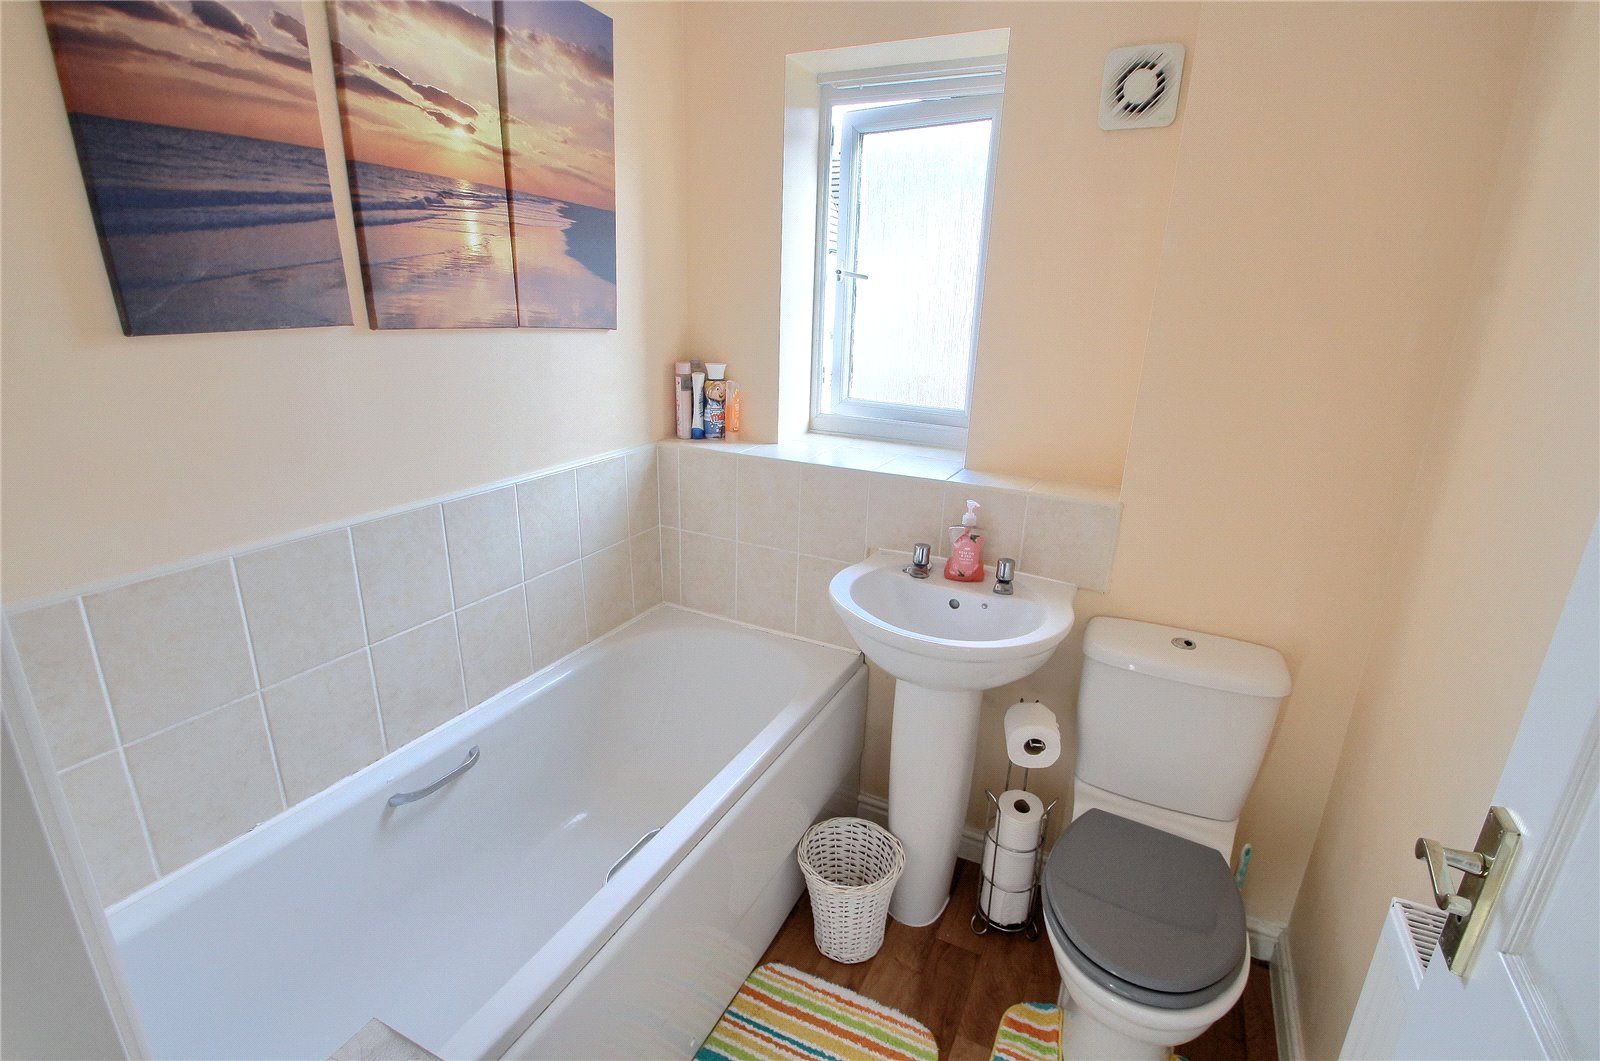 4 bed house for sale in Crimdon Beck Close, Whitewater Glade  - Property Image 7